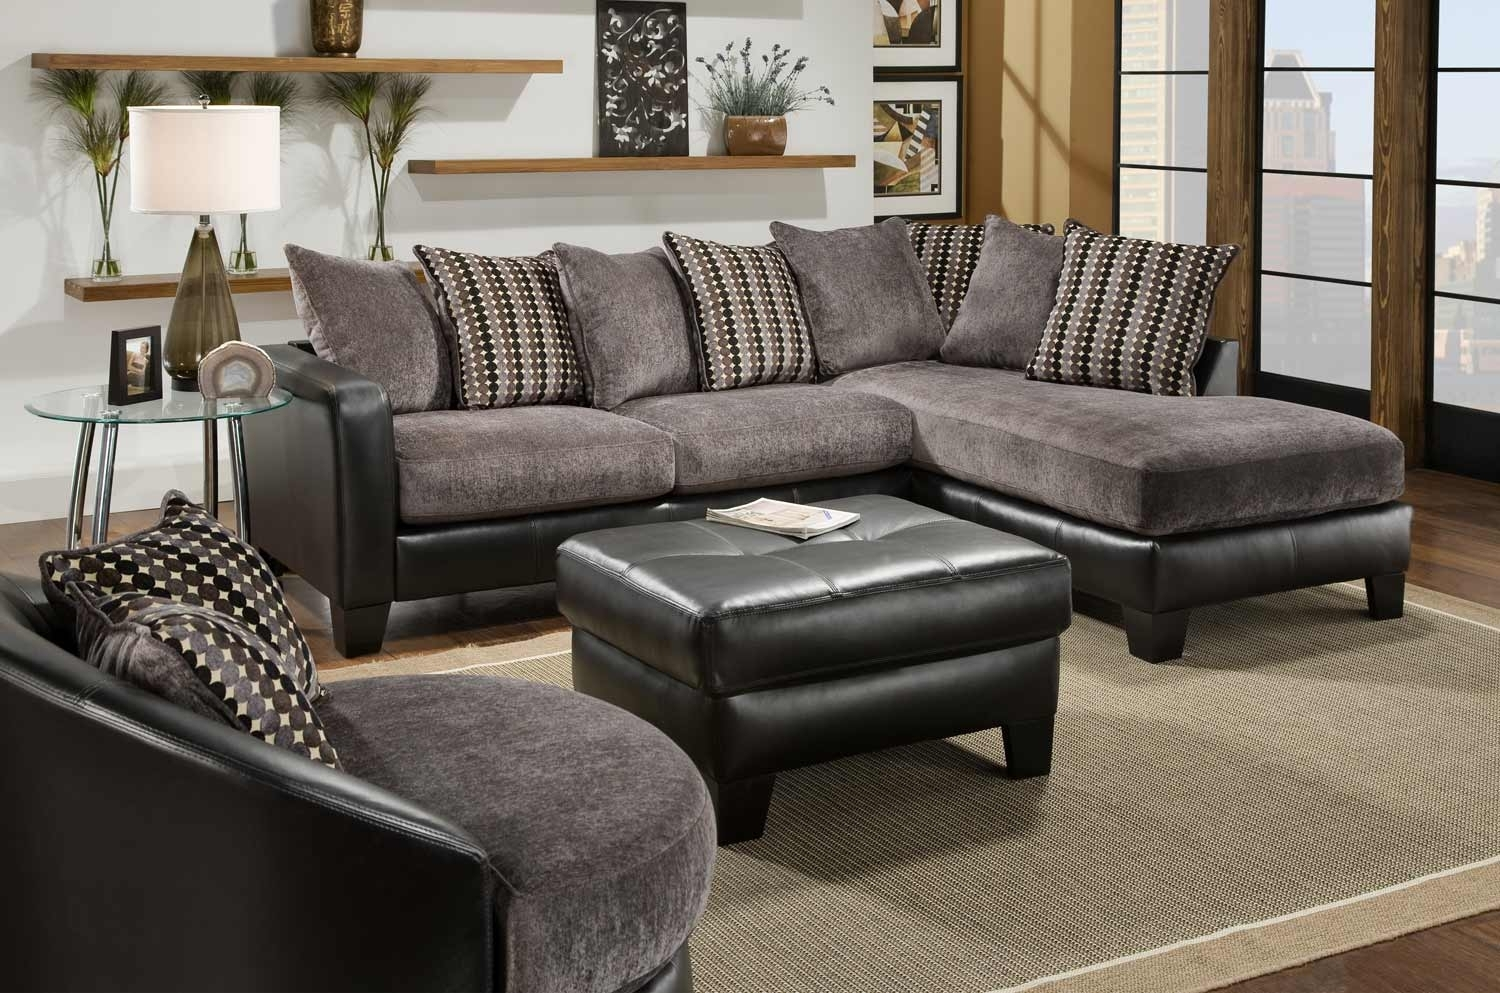 Fascinating Picture Of Living Room Decoration Using L Shape Leather Pertaining To Black Leather Sectionals With Ottoman (Image 5 of 10)